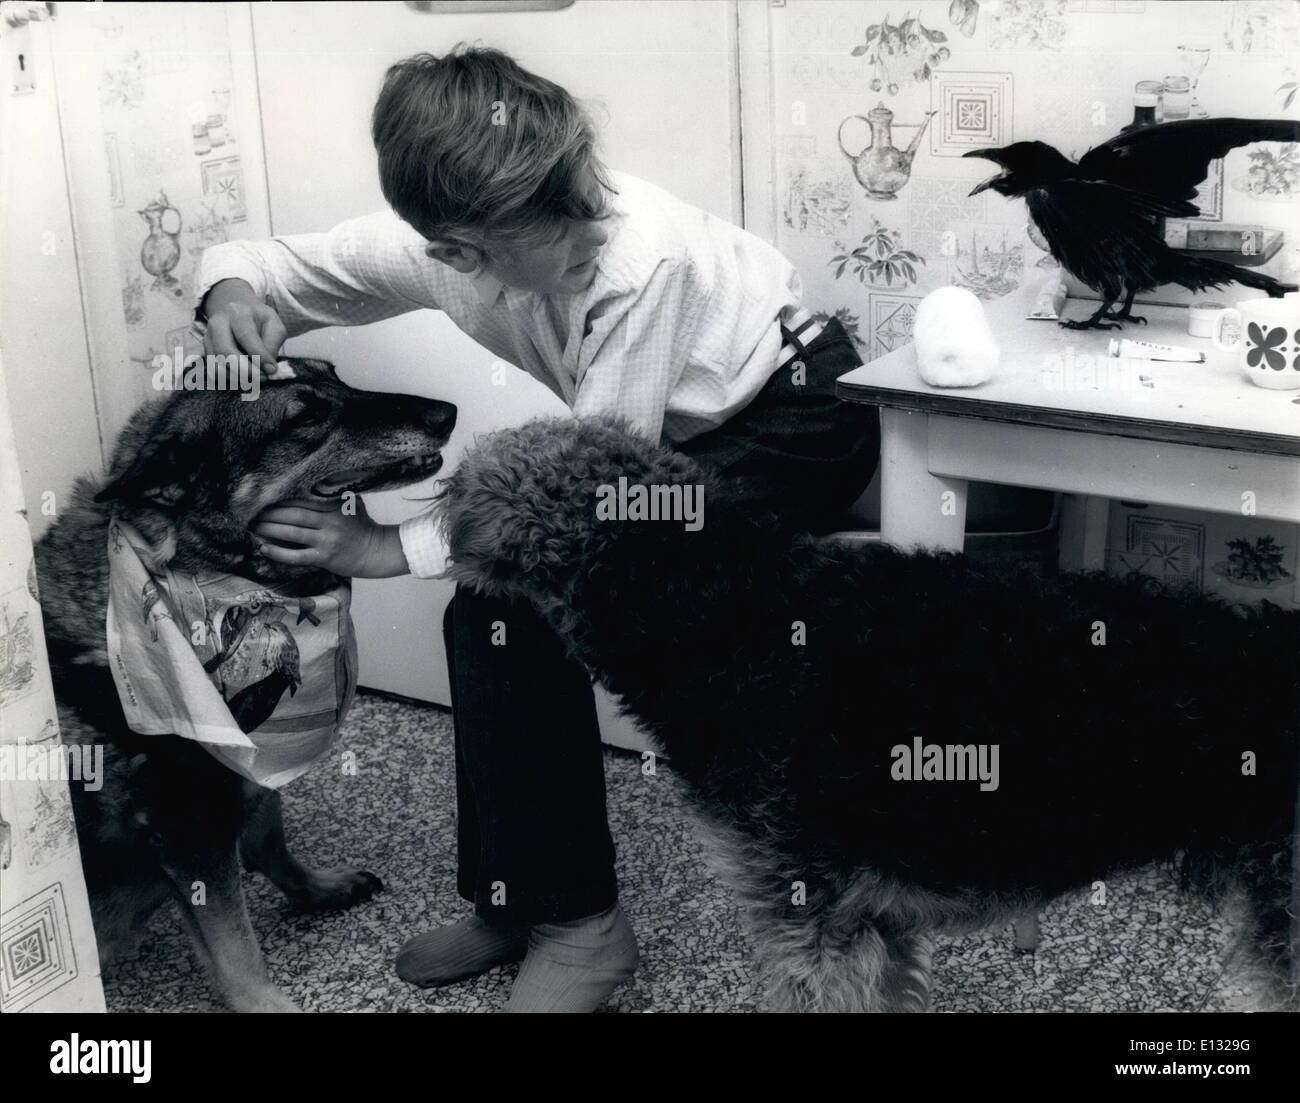 Feb. 26, 2012 - Peter the animal nurse - with three of his pats - Judy the blind alsatian, Shane the airedale - - Stock Image